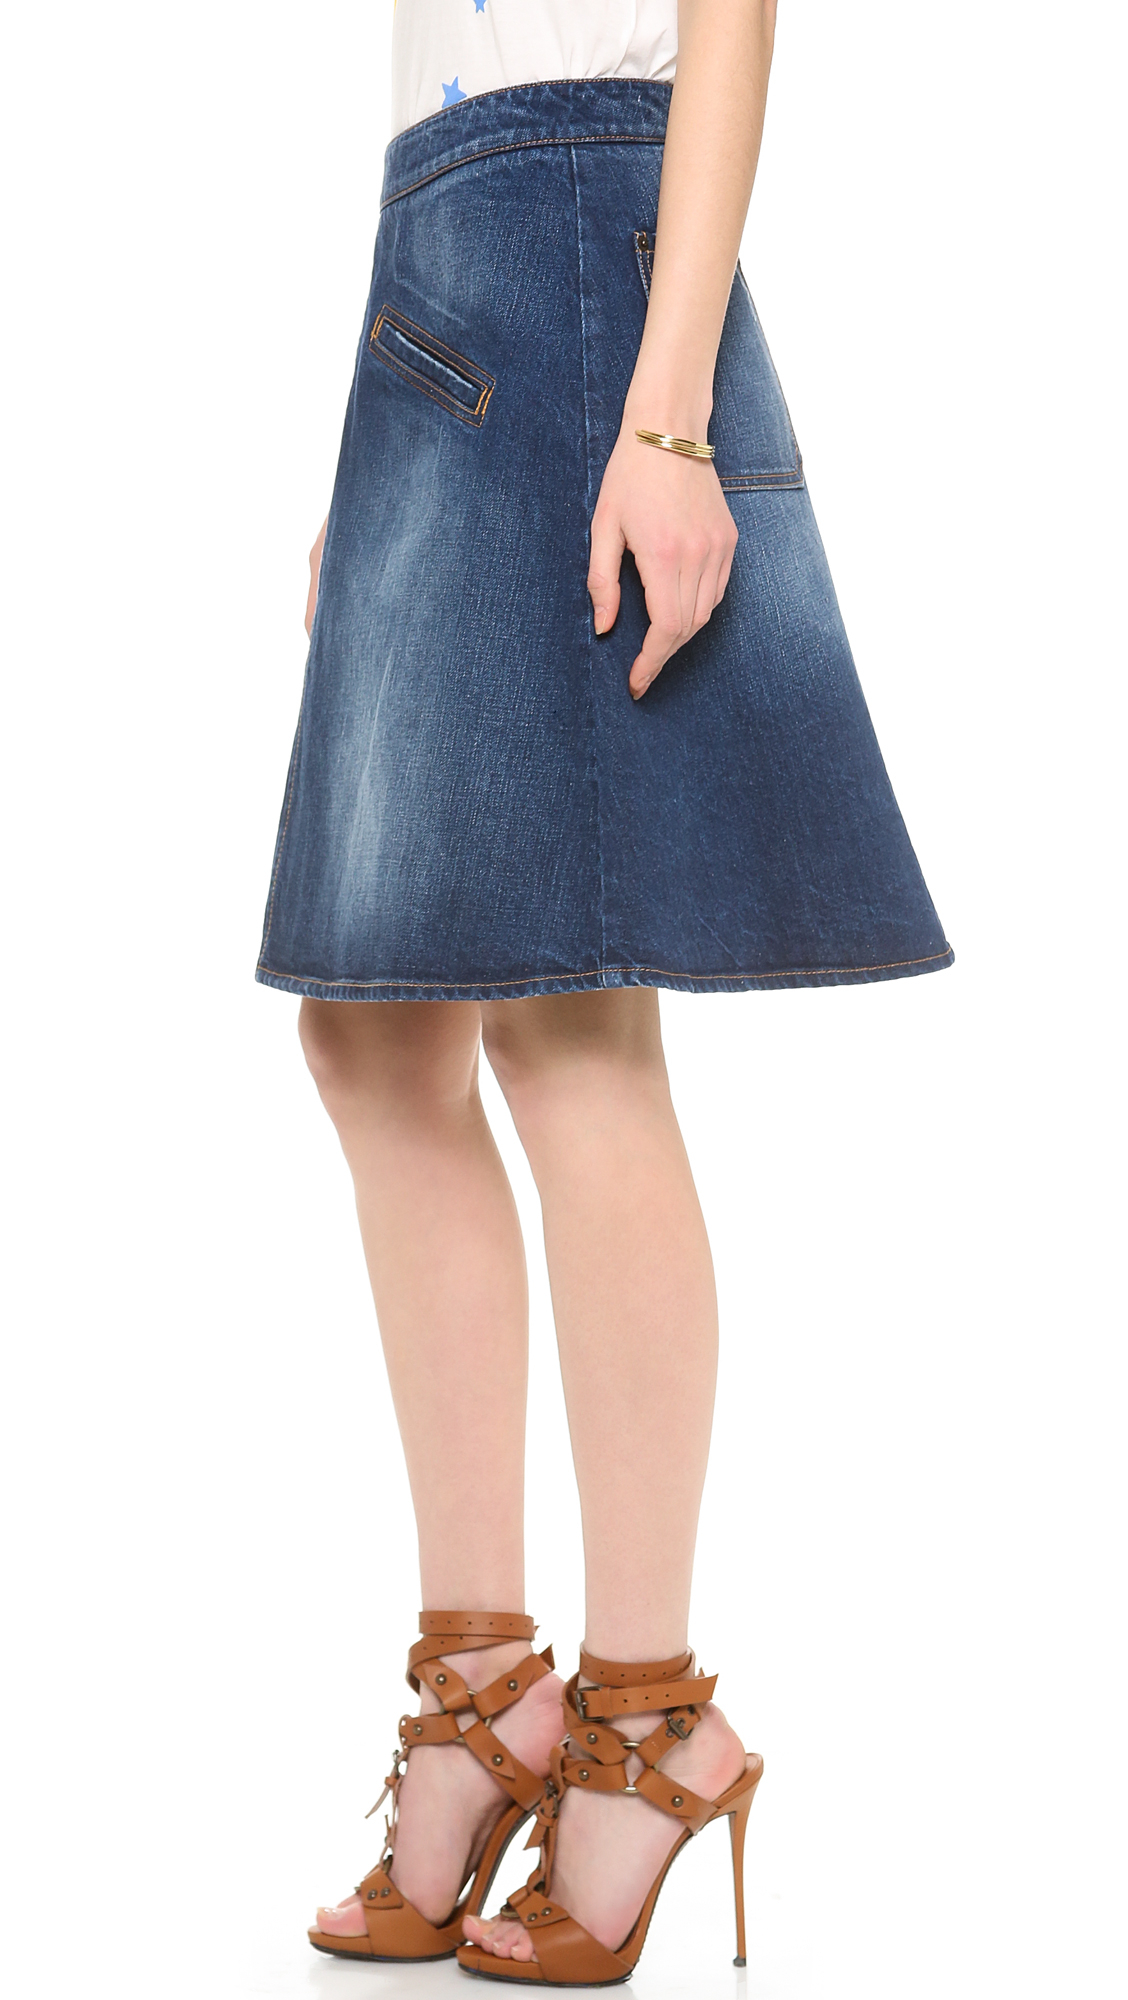 Women's Juniors Mid Waist Below Knee Length Denim Skirt in a Pencil Silhouette. Brand New. $ Buy It Now. Free Shipping. CATO Womens Stretch Denim Skirt Washed Blue Size 14 Below Knee Pencil Pockets. Marc Jacobs Denim Jean Medium Wash A-Line Knee Length Jean Skirt Size 6.